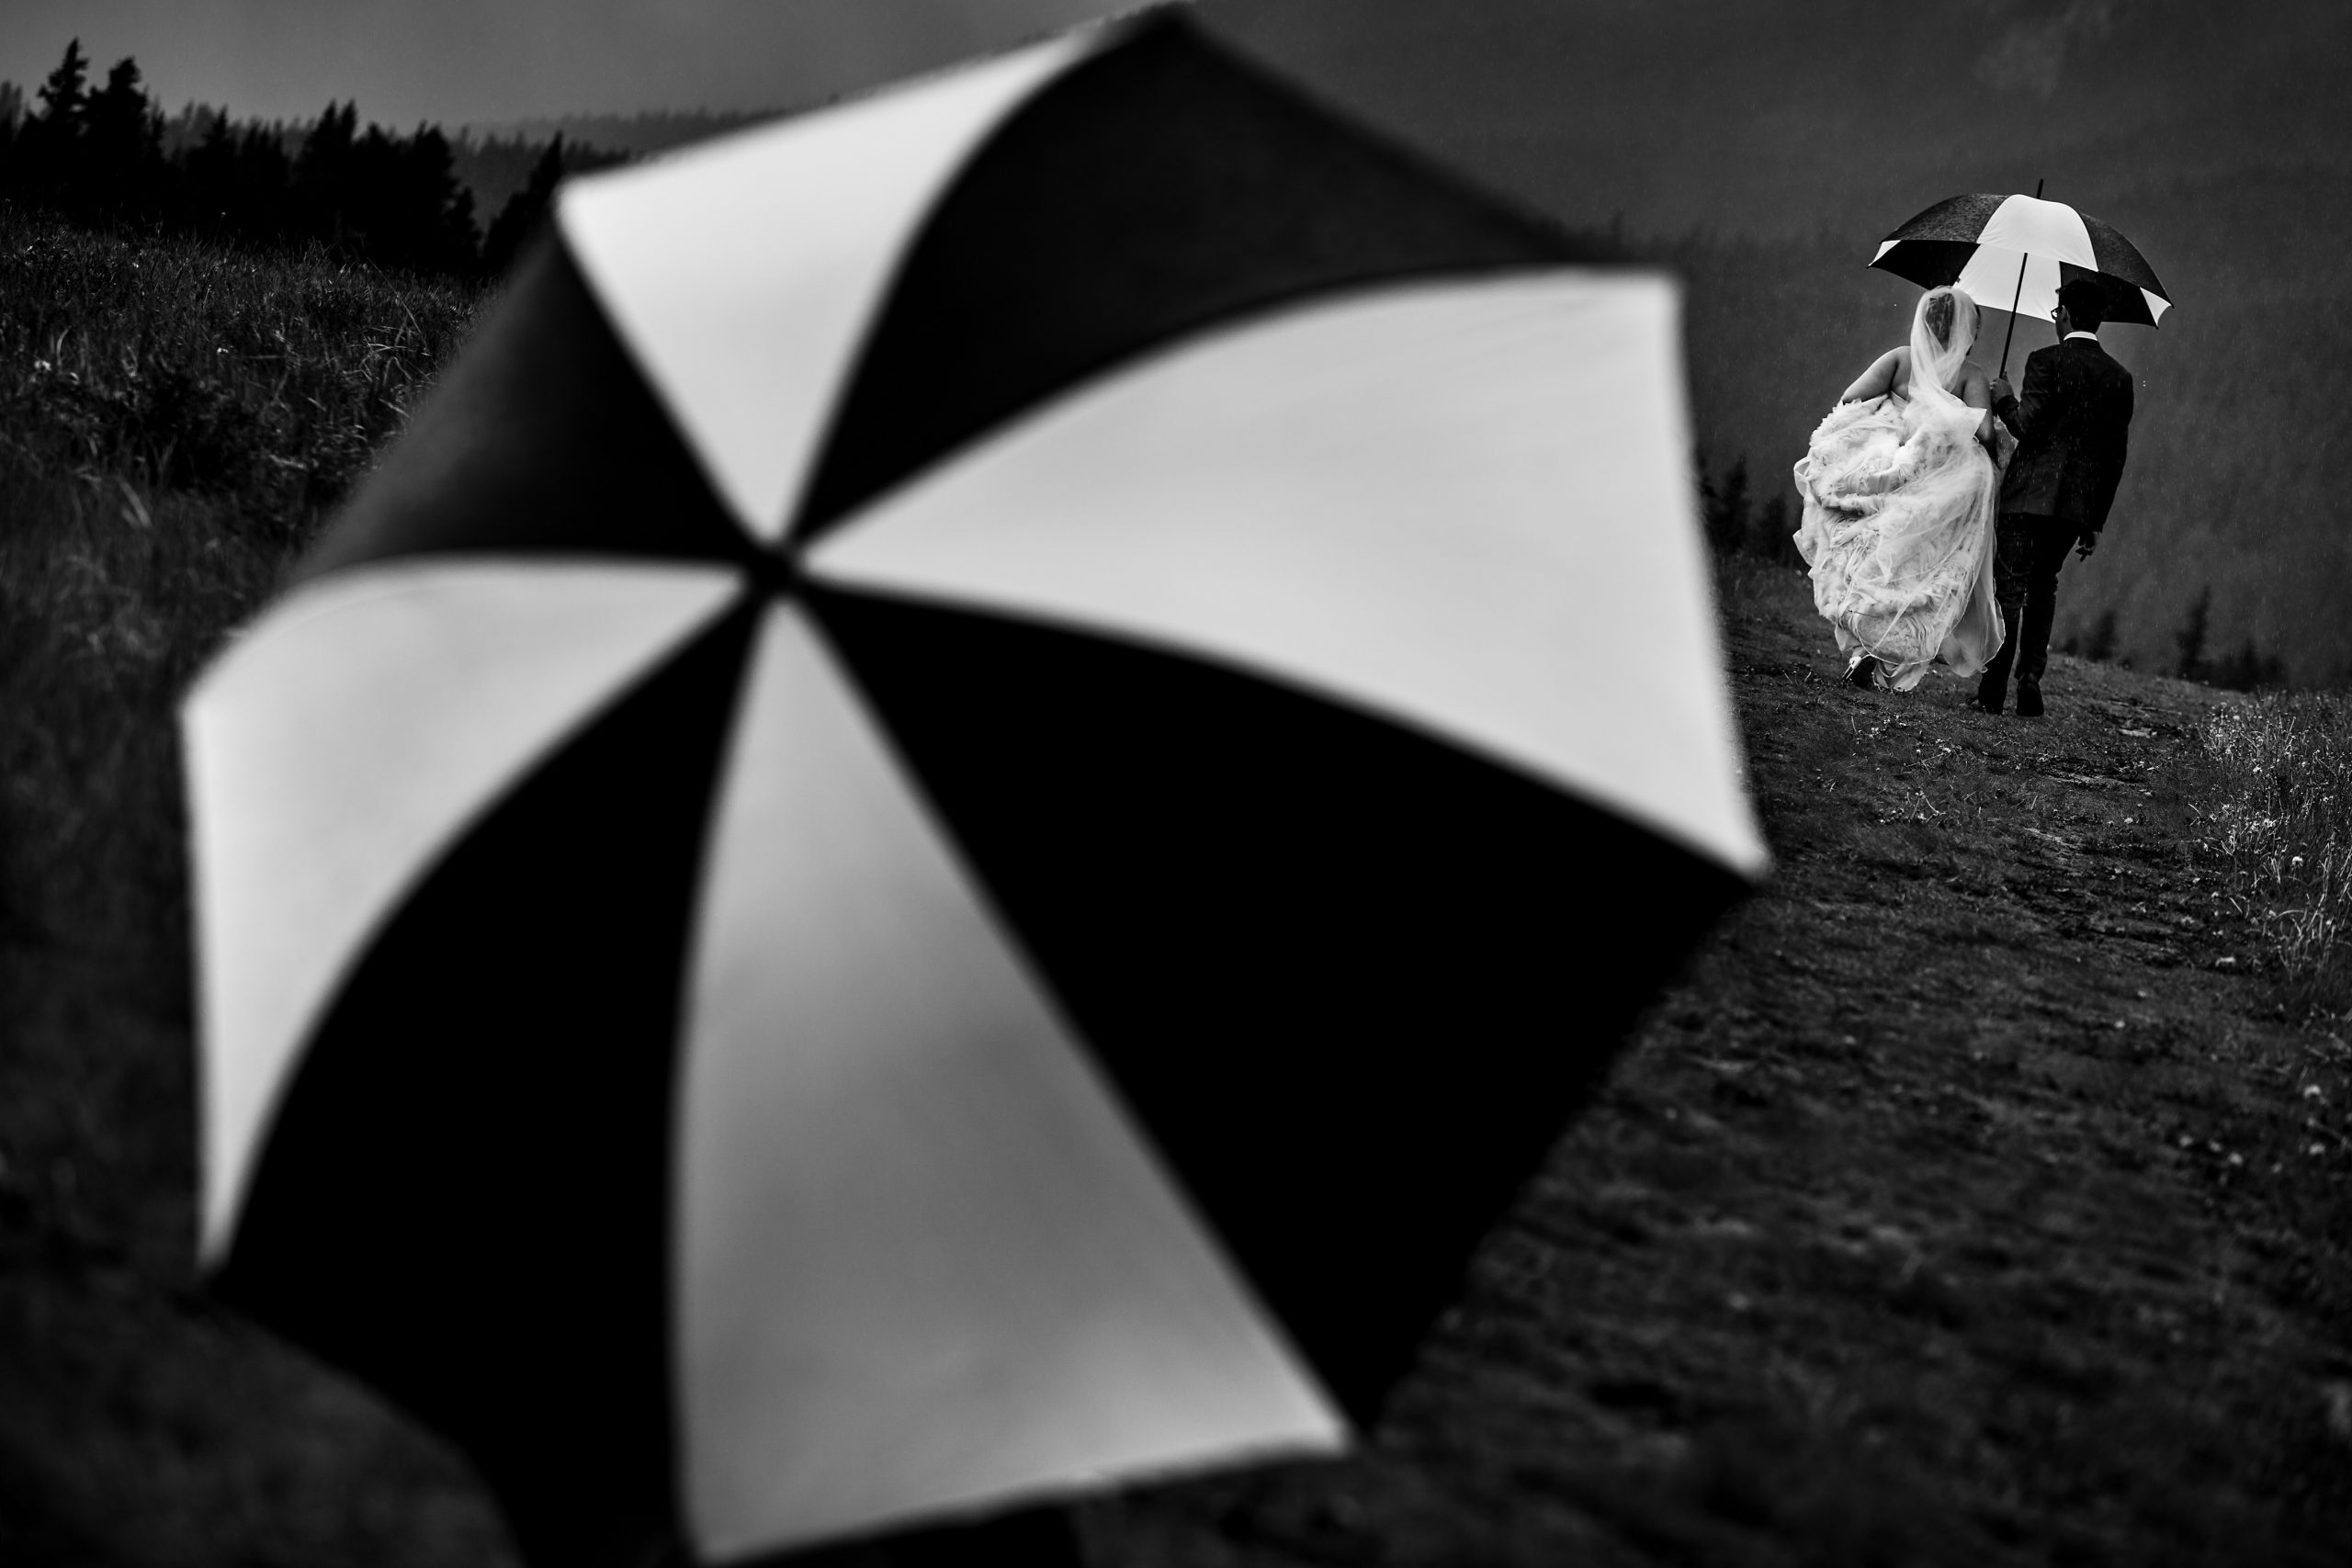 Groom holds an umbrella for bride on a rainy day with another umbrella in the foreground